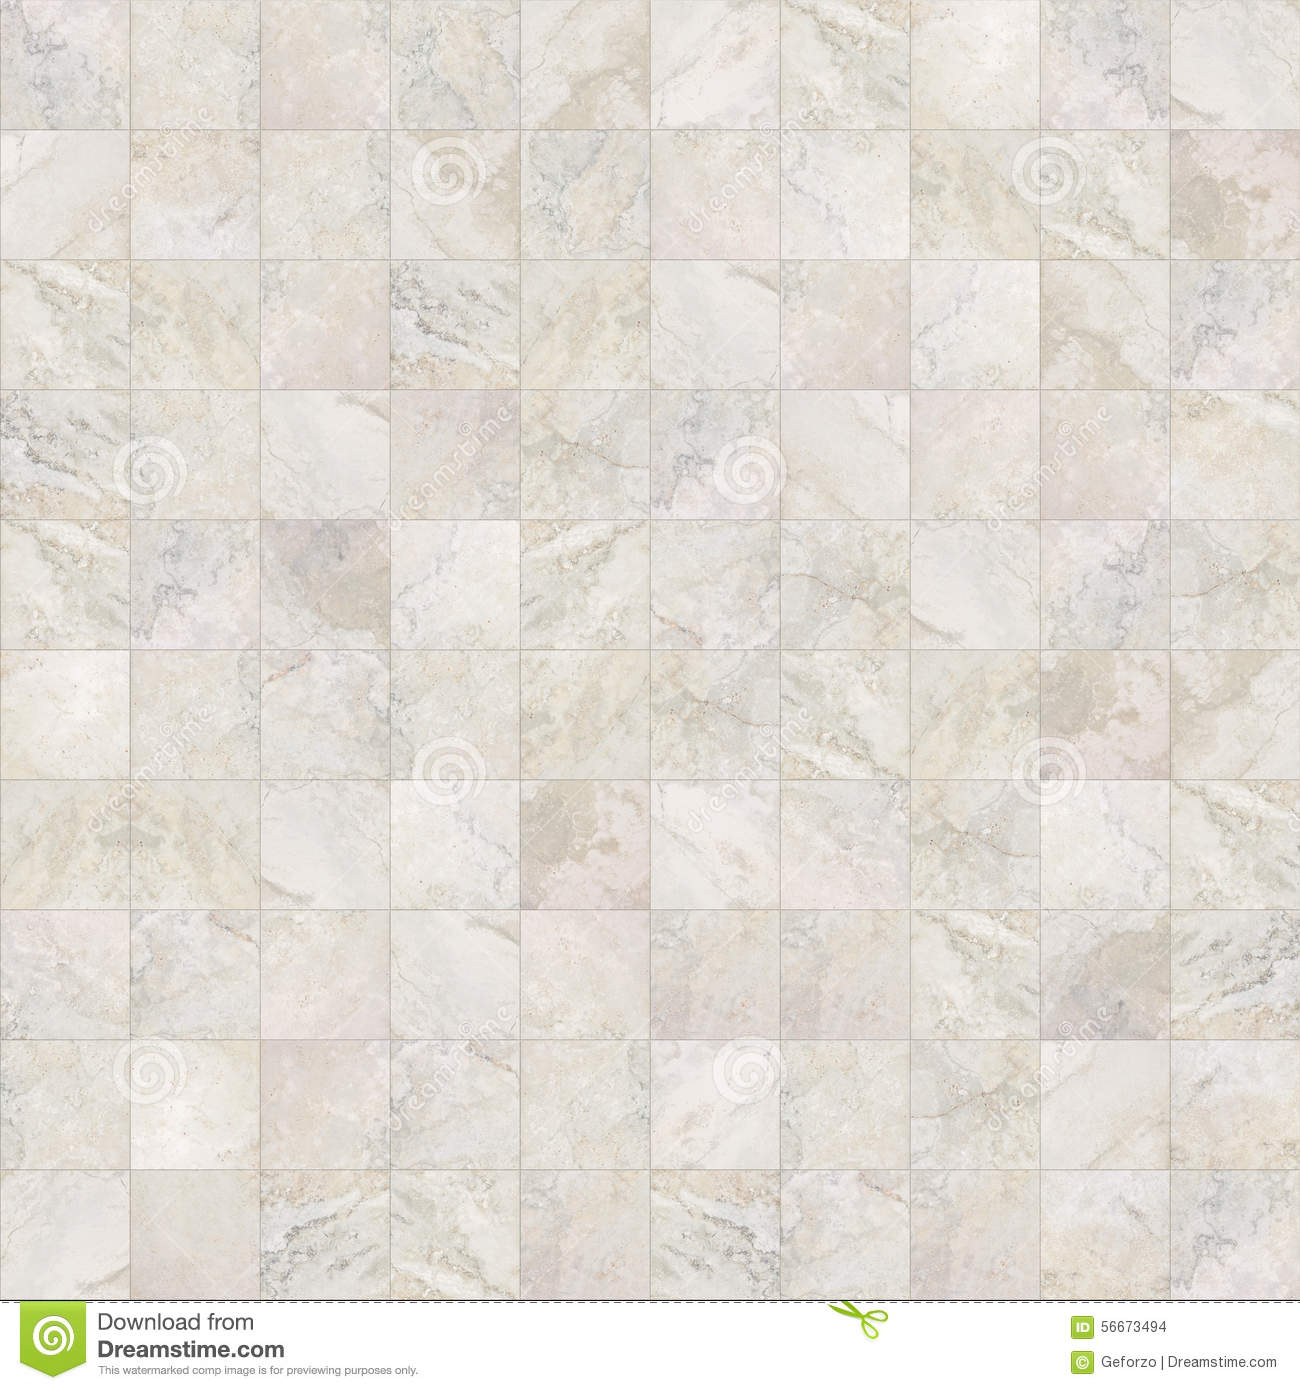 Square Seamless Marble Tiles Texture Stock Photo Image Of Ceramics Marble 56673494